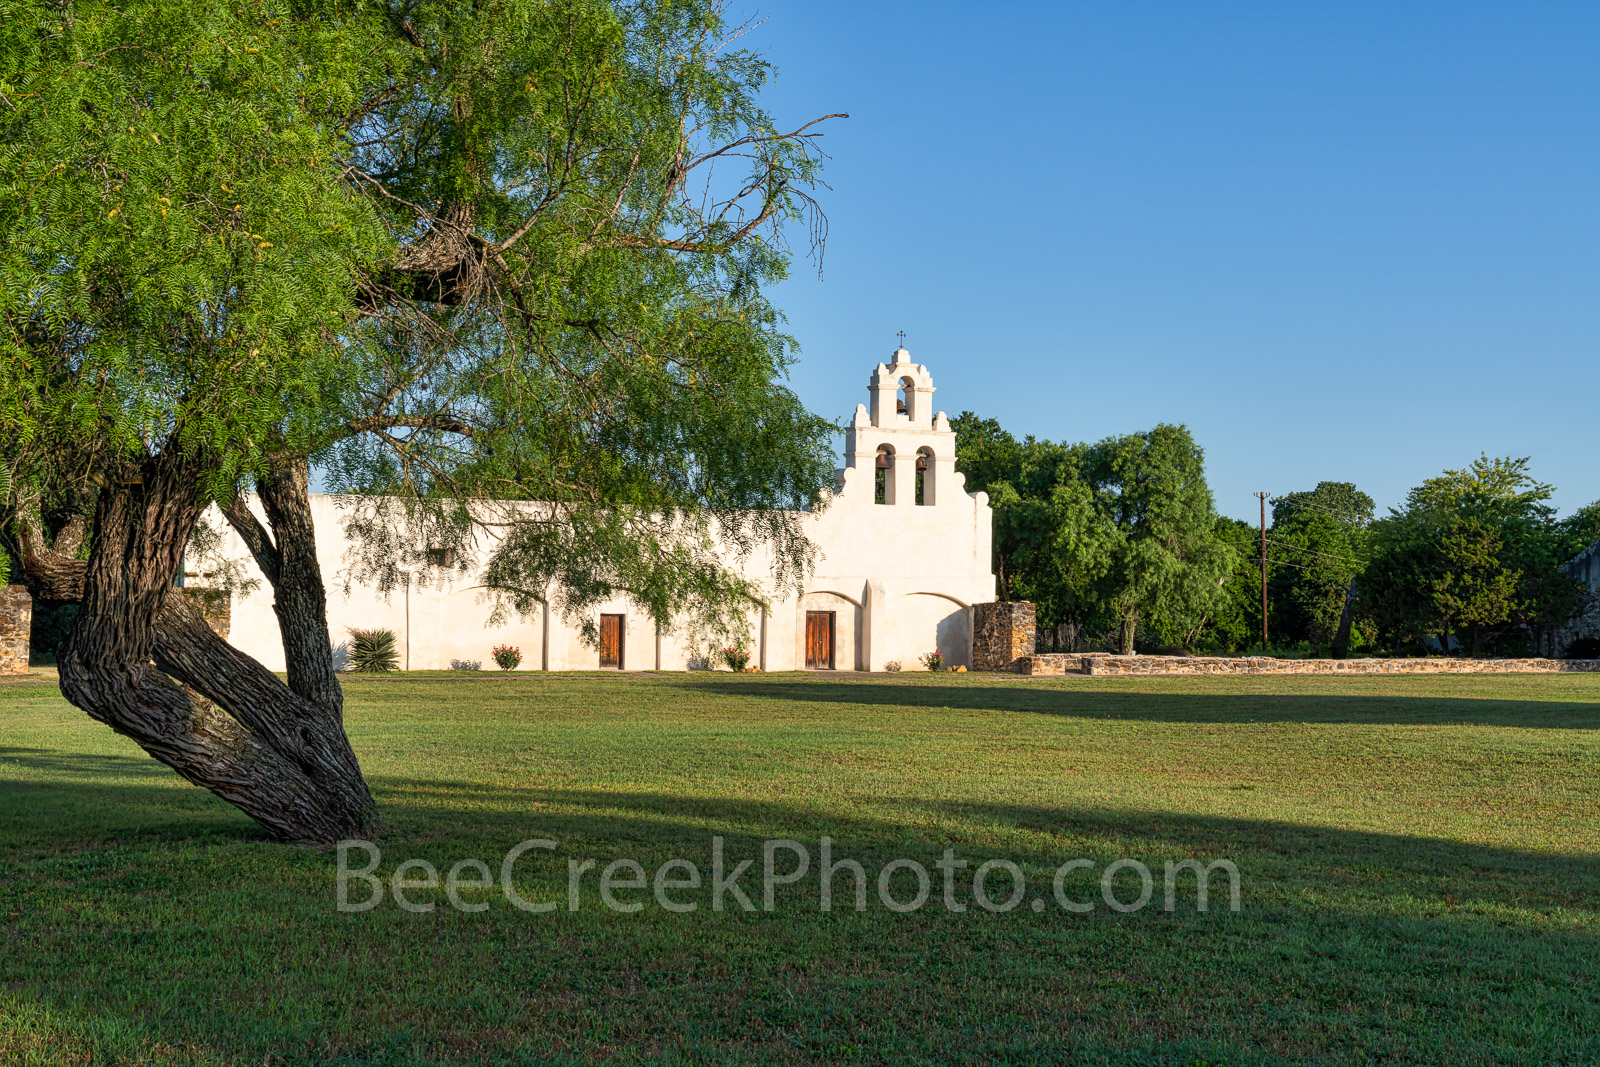 Mission San Juan,  San Antonio Missions National Historical Pano, San Antonio, Texas,, photo